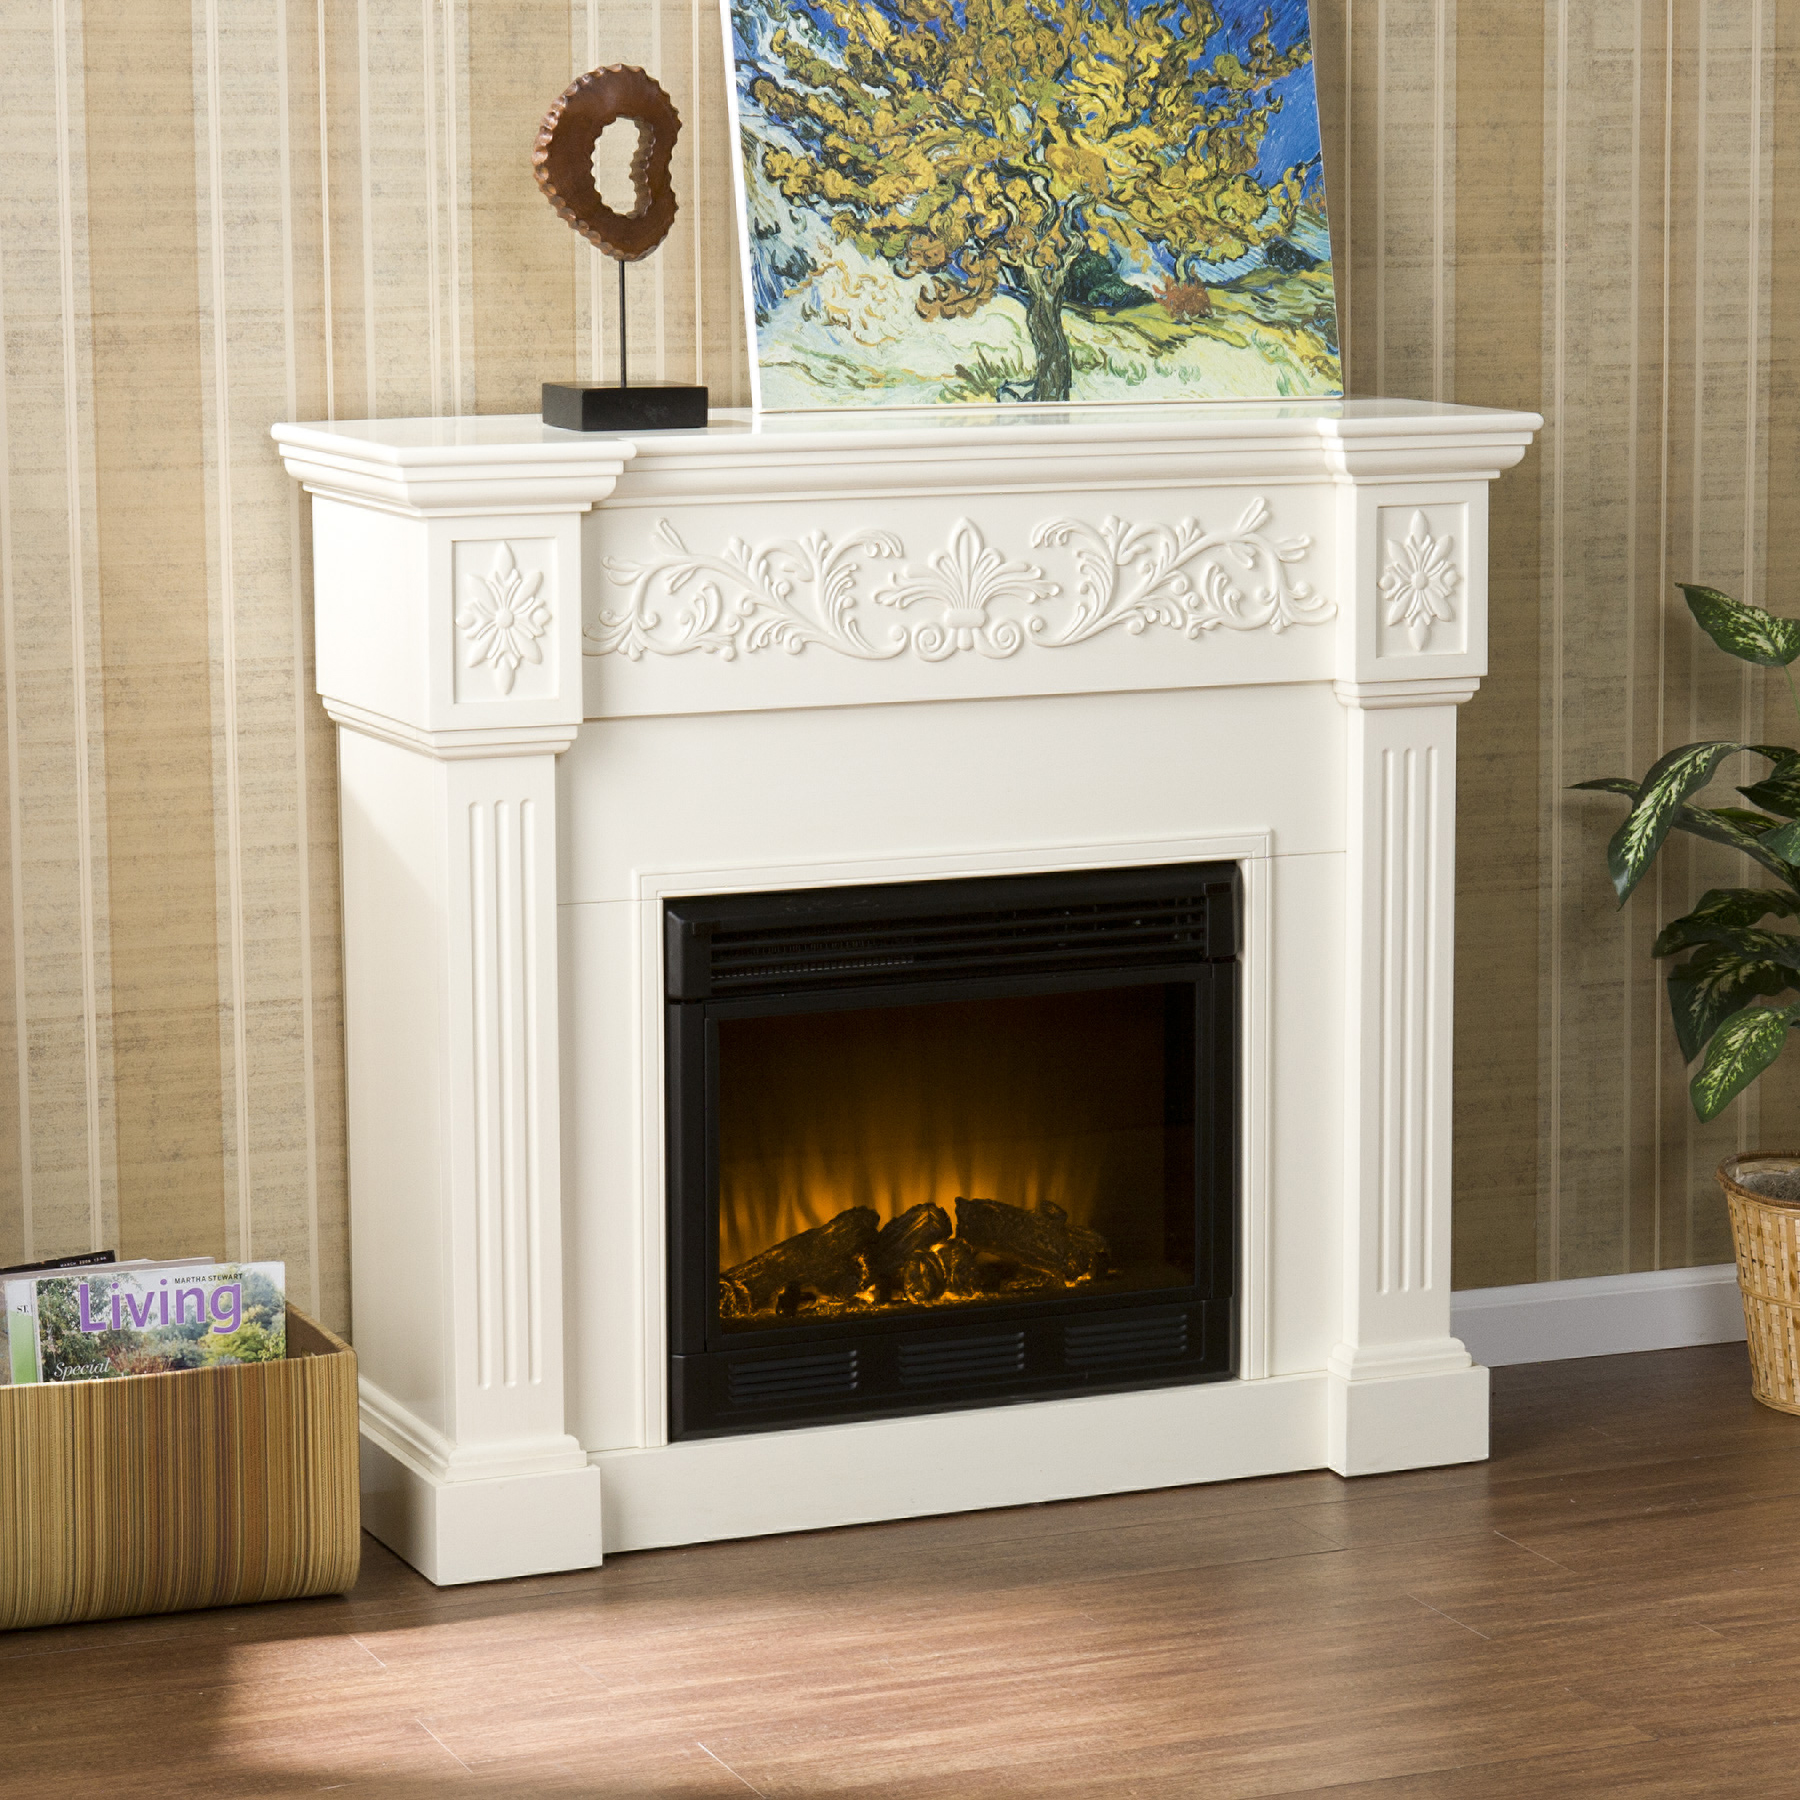 Crisp is the perfect description for Huntington Electric Fireplace-Ivory traditional ivory fireplace. Fluted columns frame the firebox on each side and an elegant floral design across the top of Huntington Electric Fireplace-Ivory classic fireplace draws